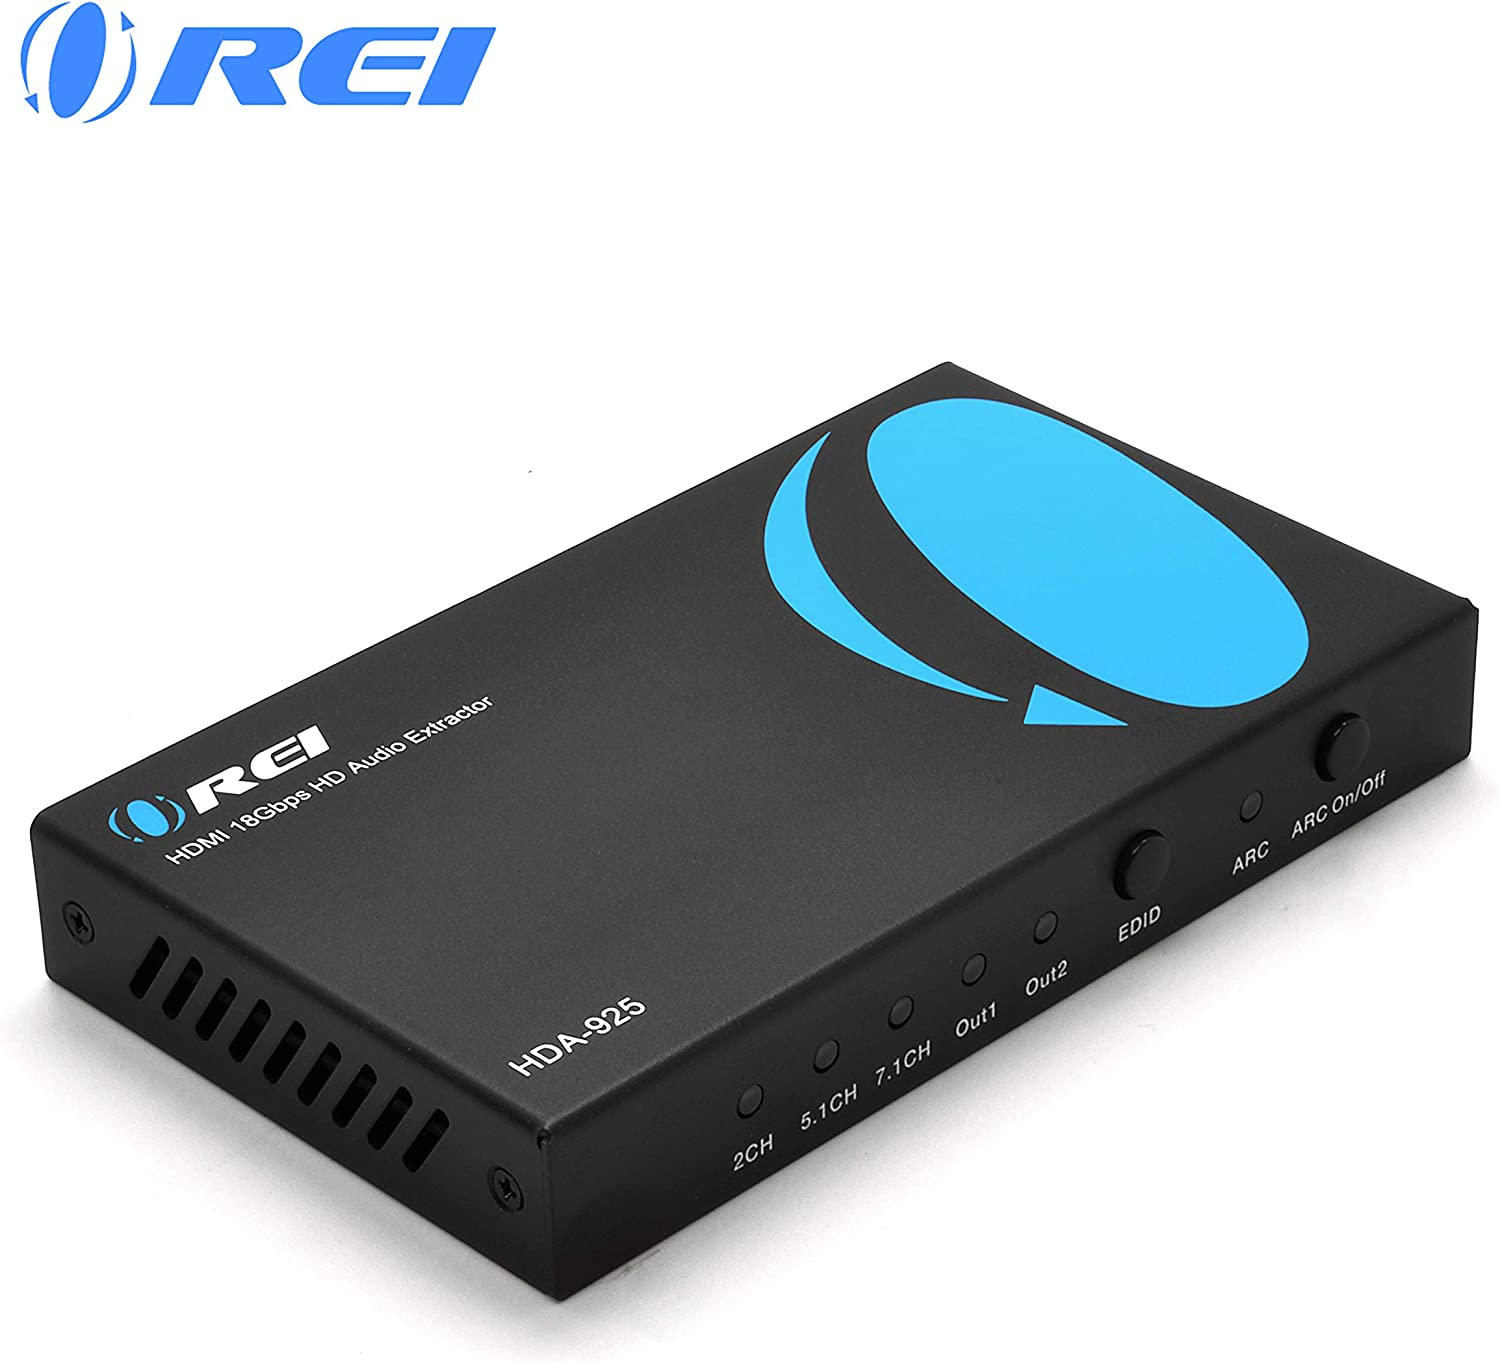 Orei 4K 60Hz 18G HDMI 2.0 Audio Converter Extractor ARC Support - SPDIF + 3.5mm Output - HDCP 2.2 - Dolby Digital/DTS Passthrough CEC, HDR, Dolby Vision, HDR10 Support (HDA-925)